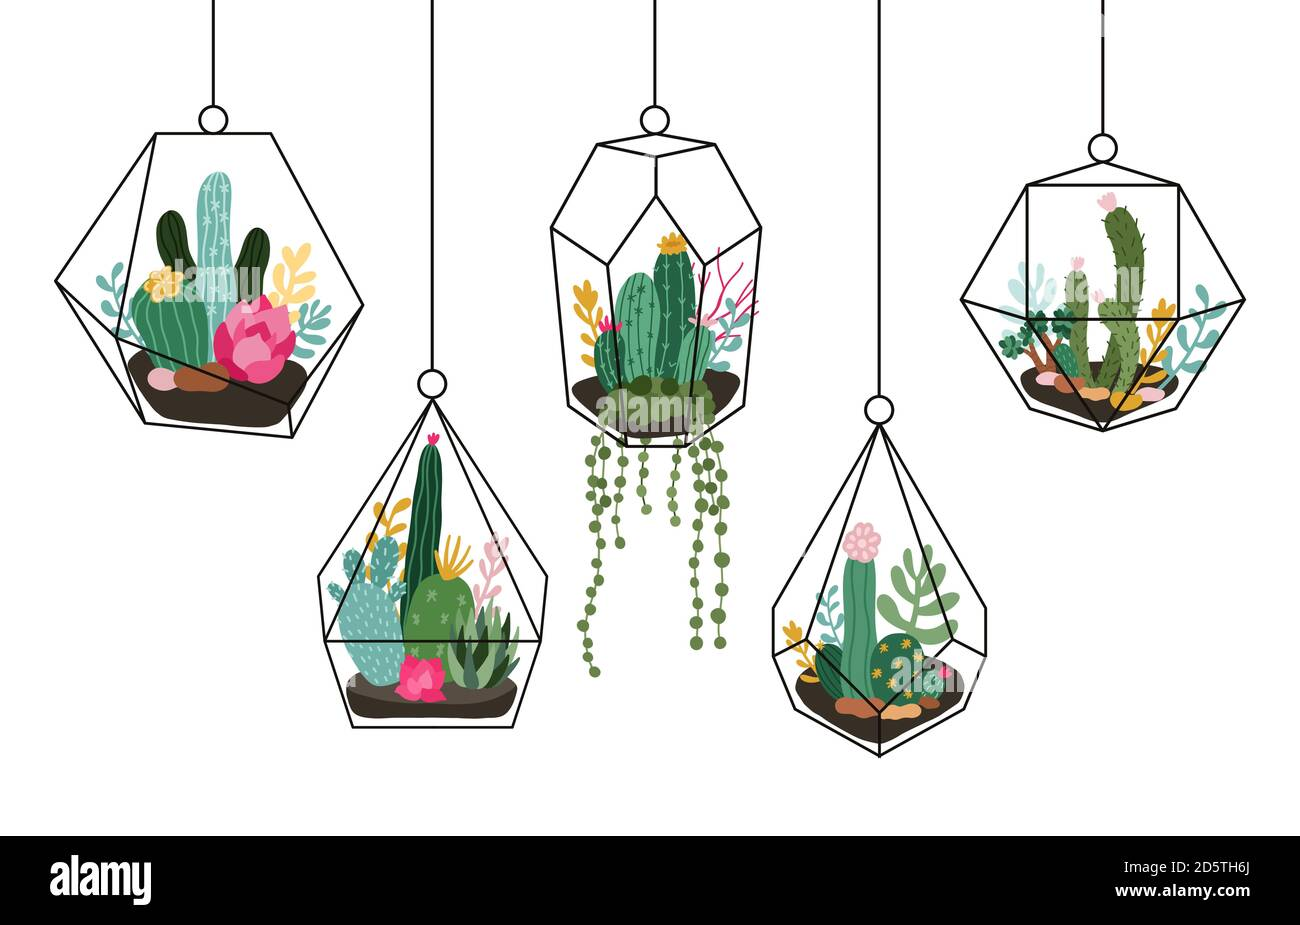 Doodle Hanging Terrarium Succulents And Cactuses Glass Florariums Tropical Plants Interior Geometric Terrarium Isolated Vector Illustration Set Stock Vector Image Art Alamy